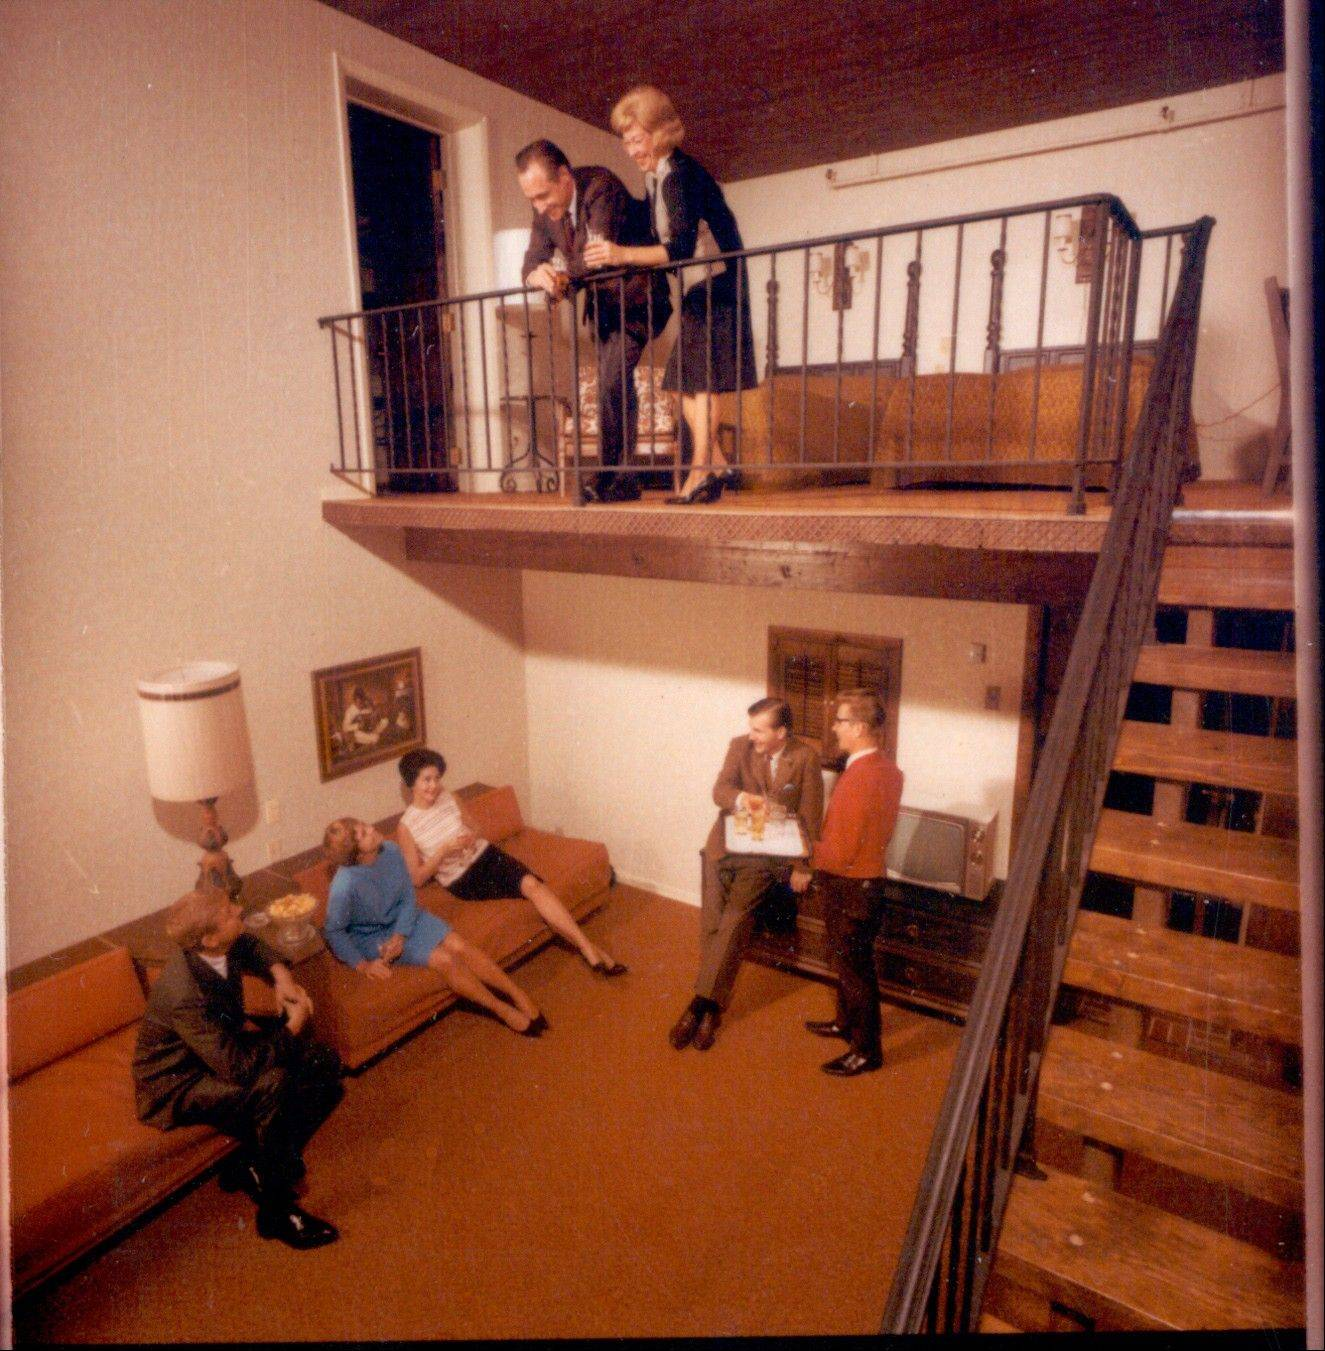 Multilevel suites were an early feature of the resort. Management is now updating guest rooms to adapt to modern electronics and television viewing habits.